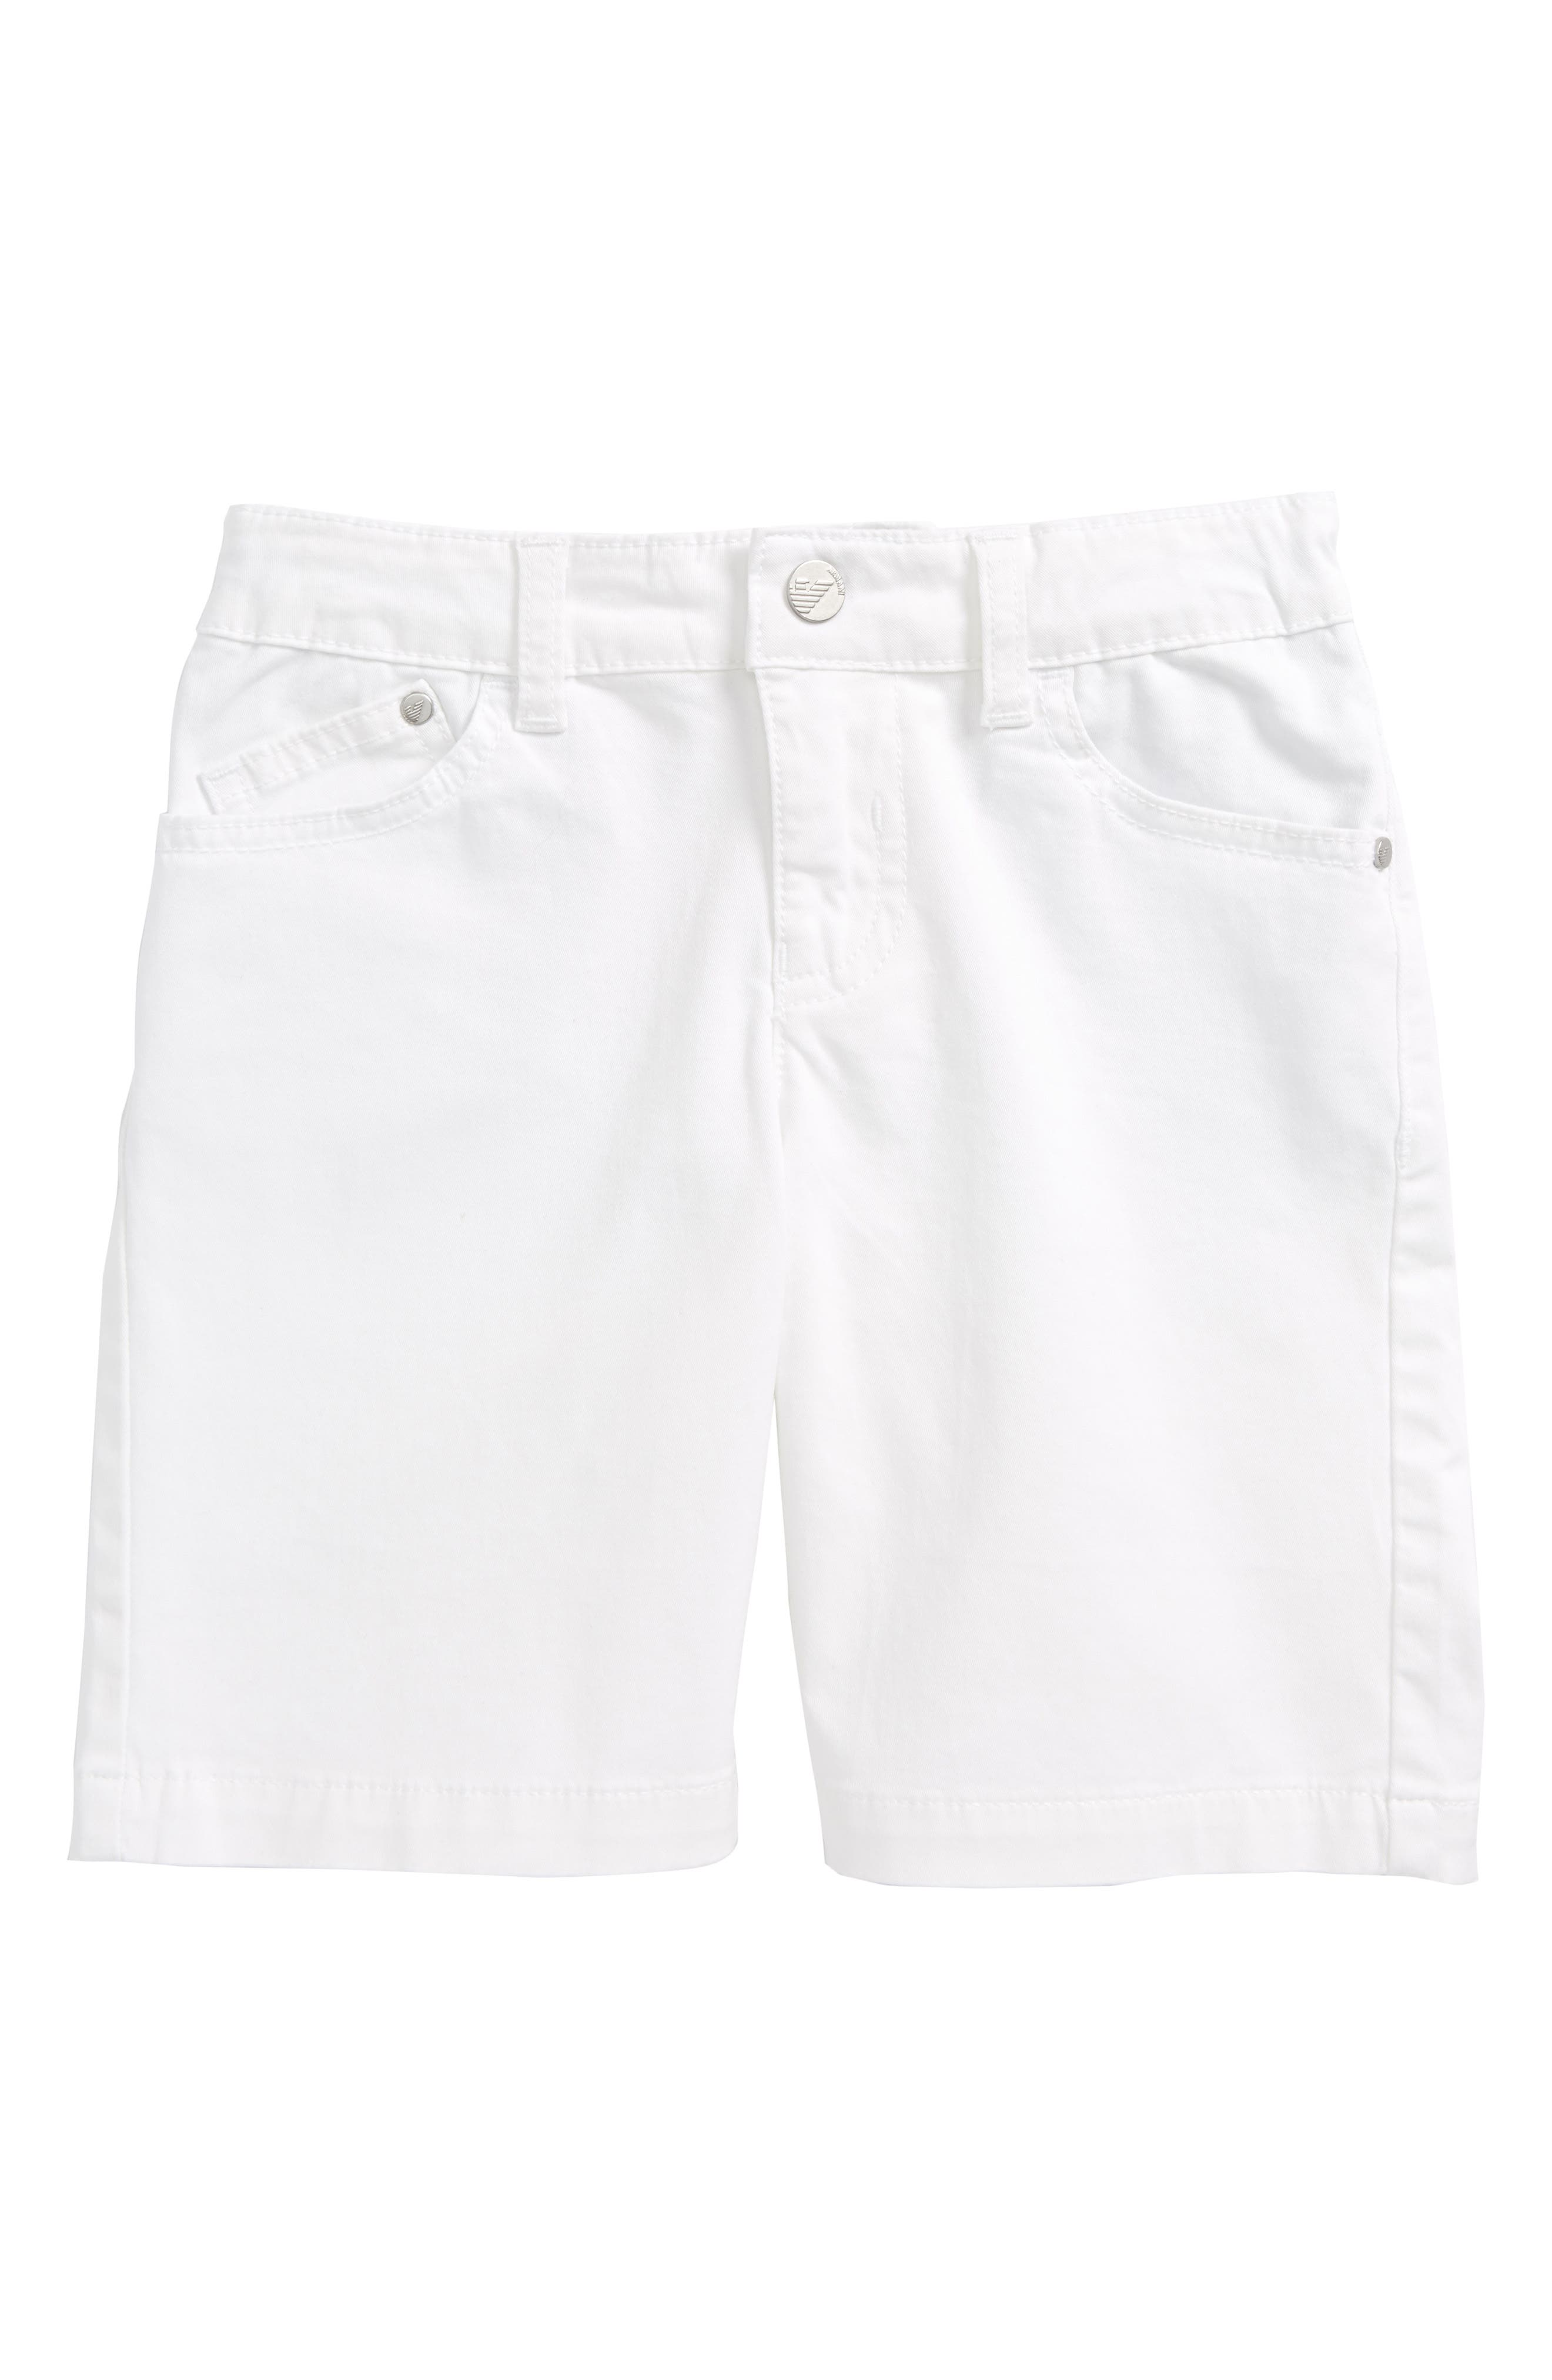 Stretch Cotton Shorts,                             Main thumbnail 1, color,                             White